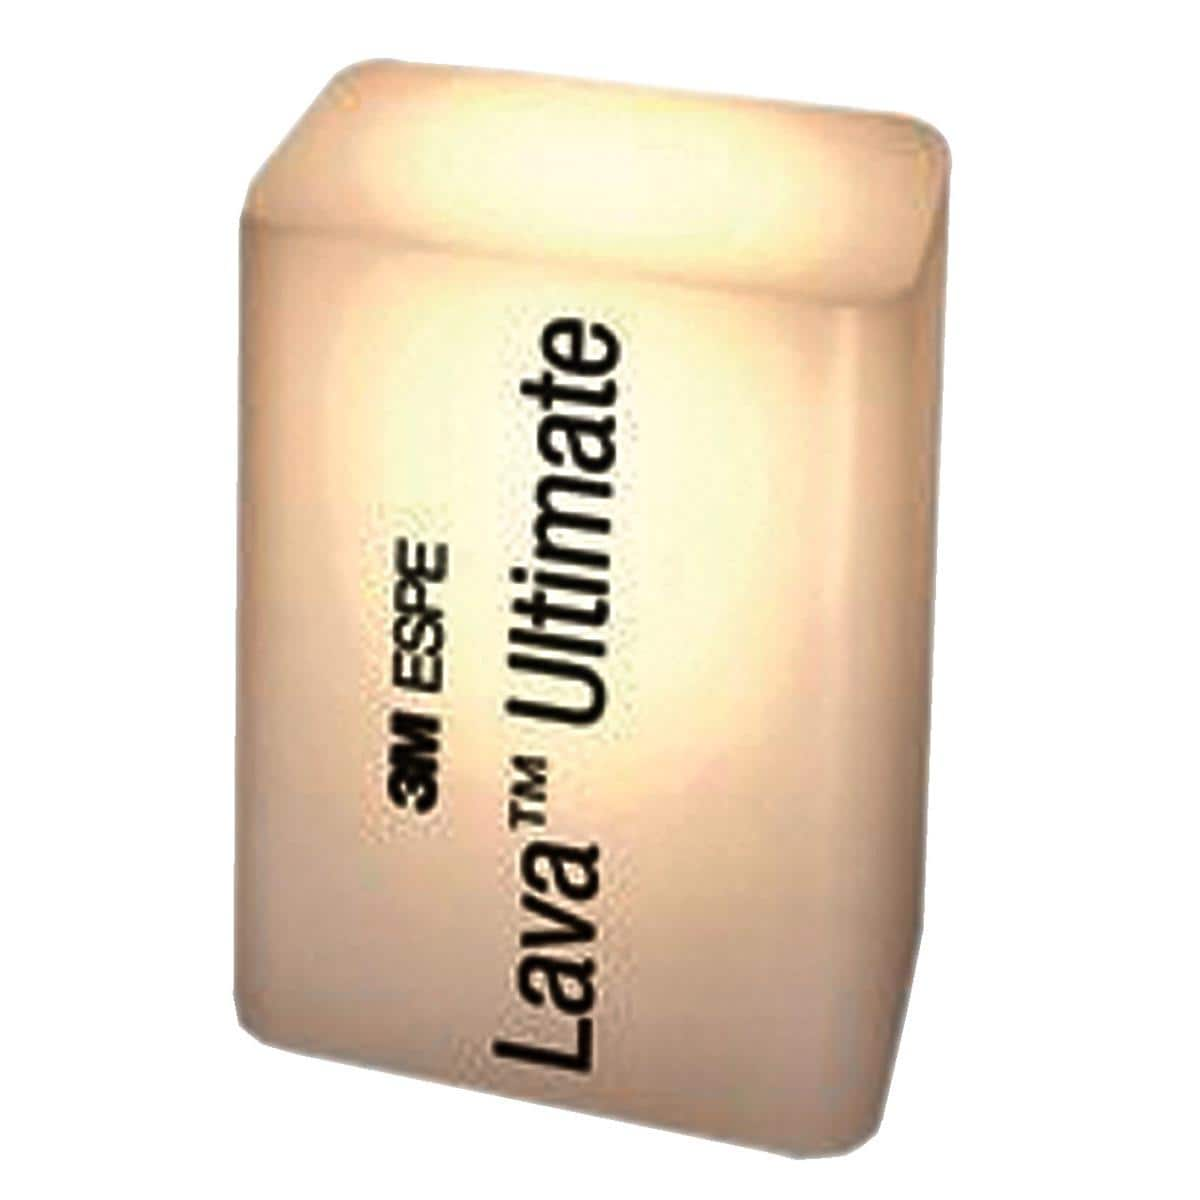 Lava Ultimate CAD/CAM Block for CEREC (HT) High Translucency Shade A3 Size I12 5pk